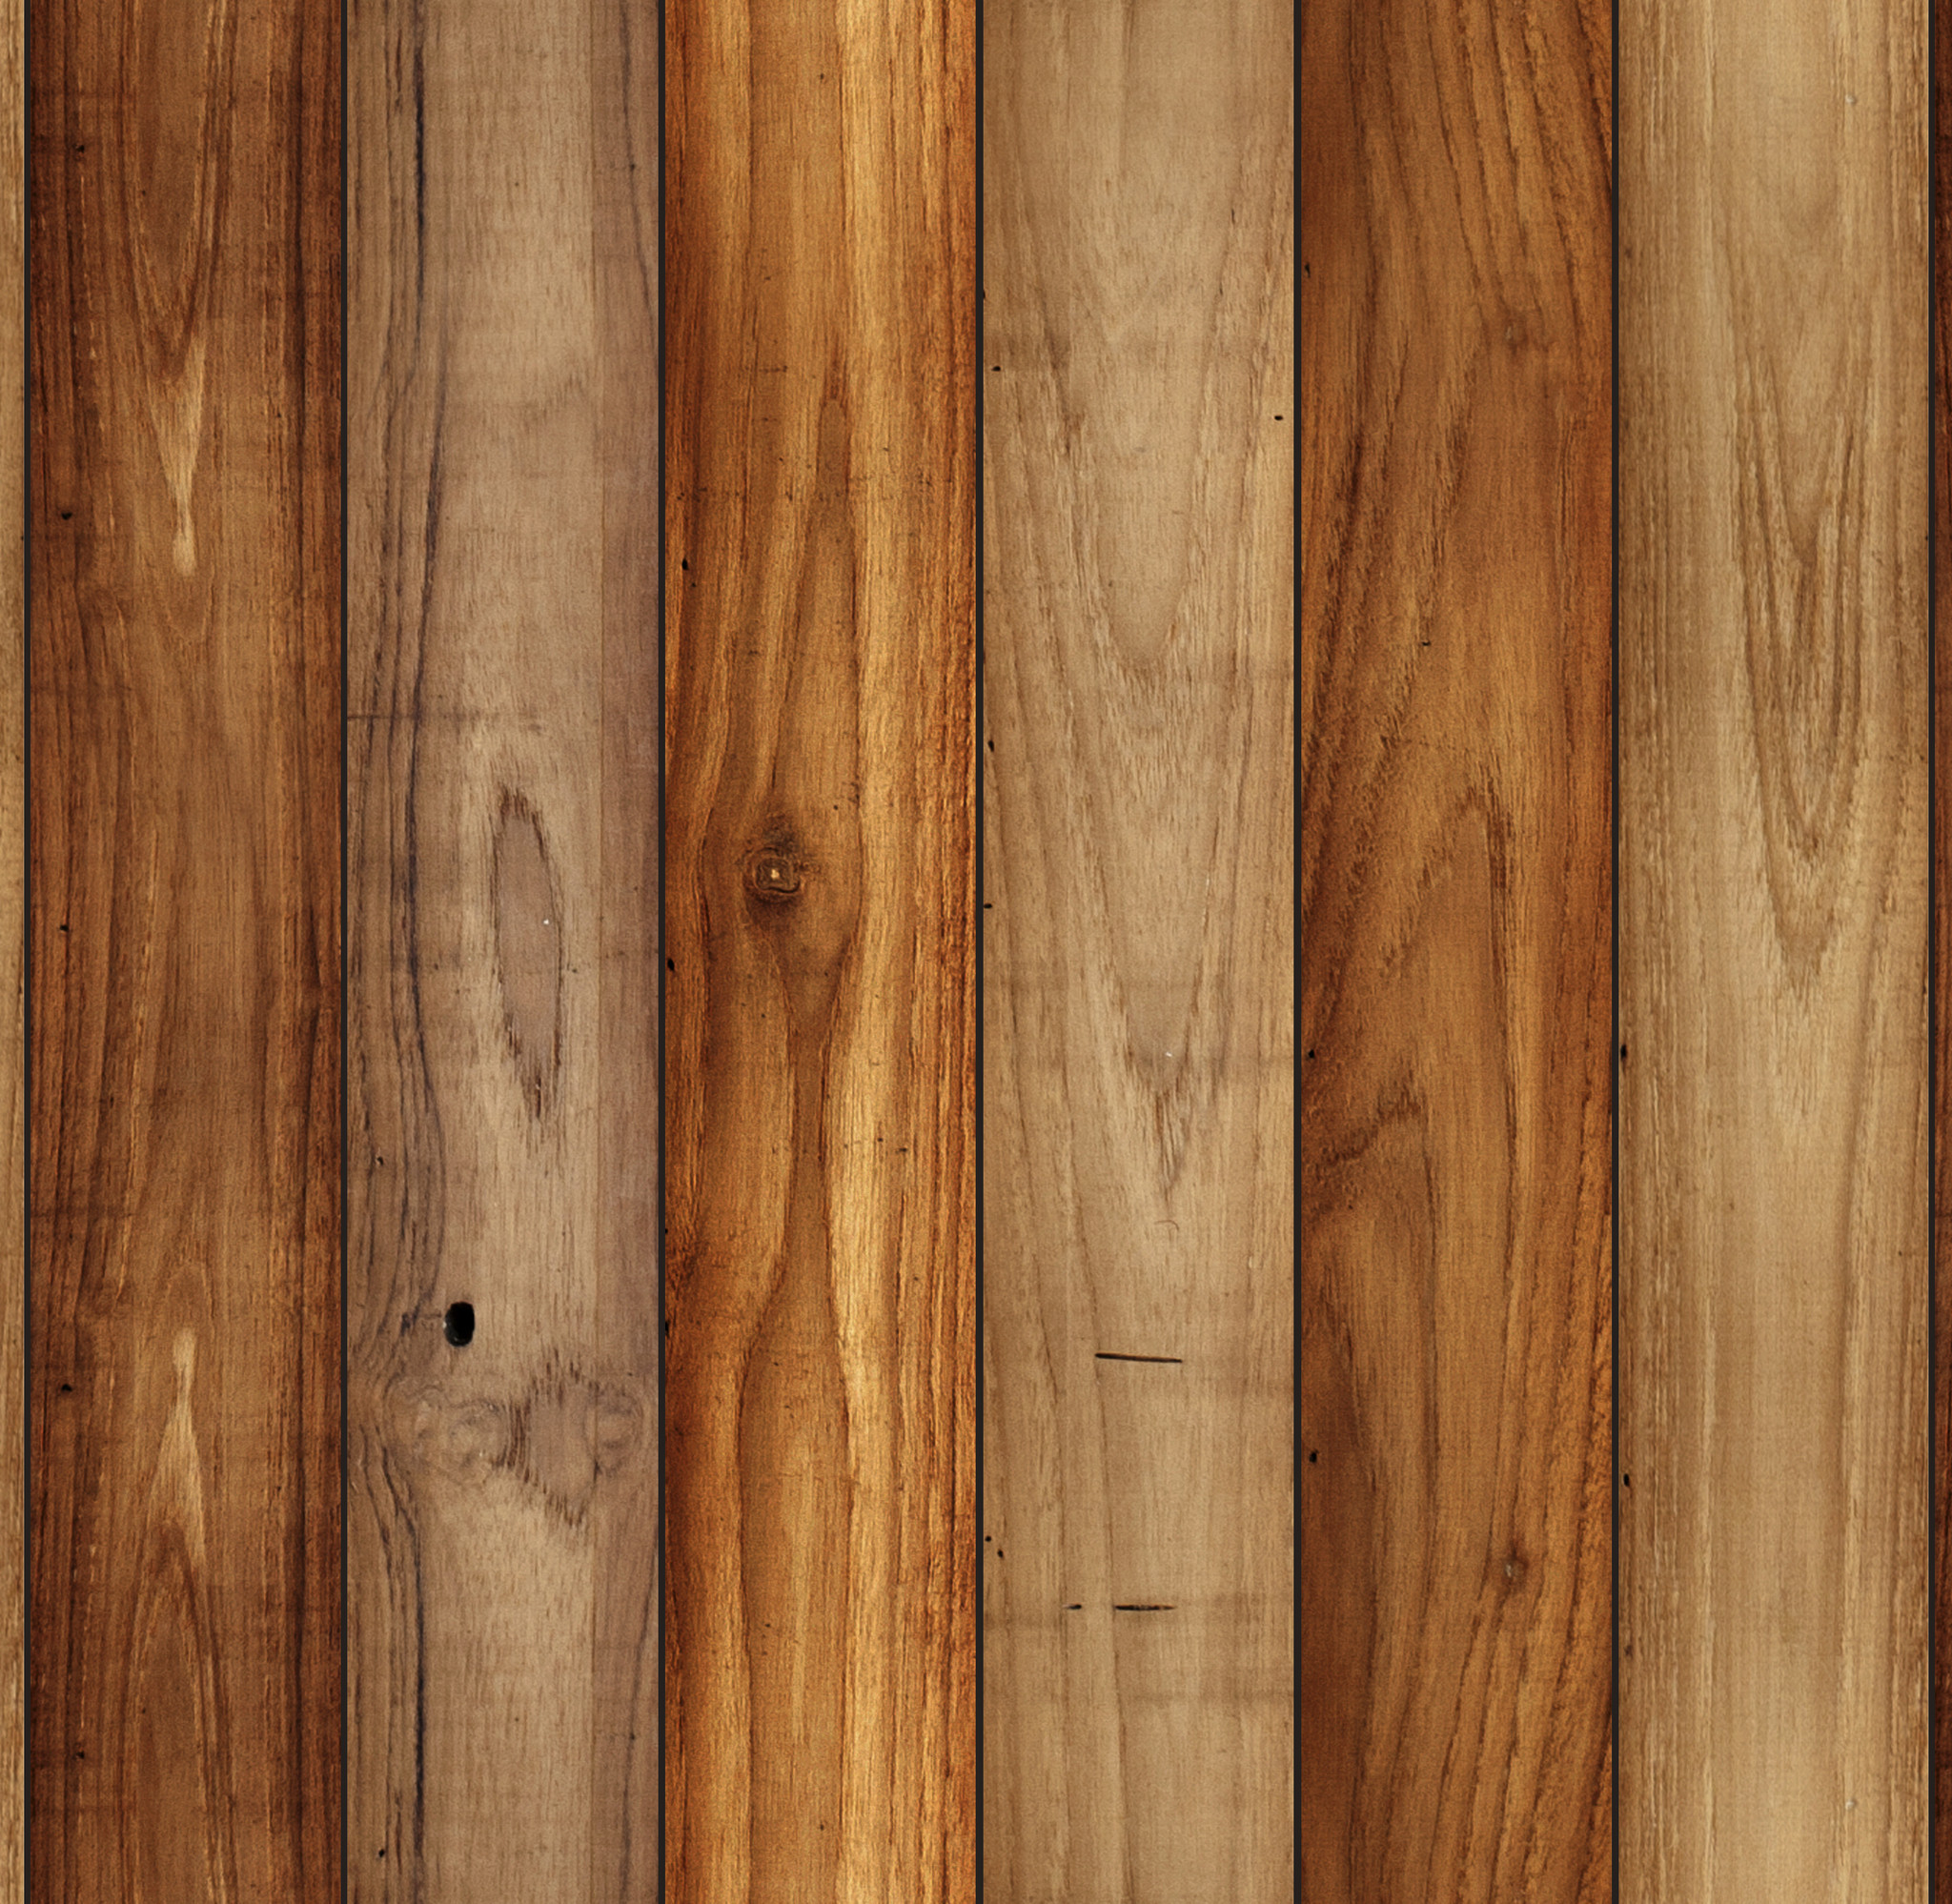 2048x1998 Our Wood Panel Removable Wallpaper can be a rustic accent in your urban  apartment. Adding